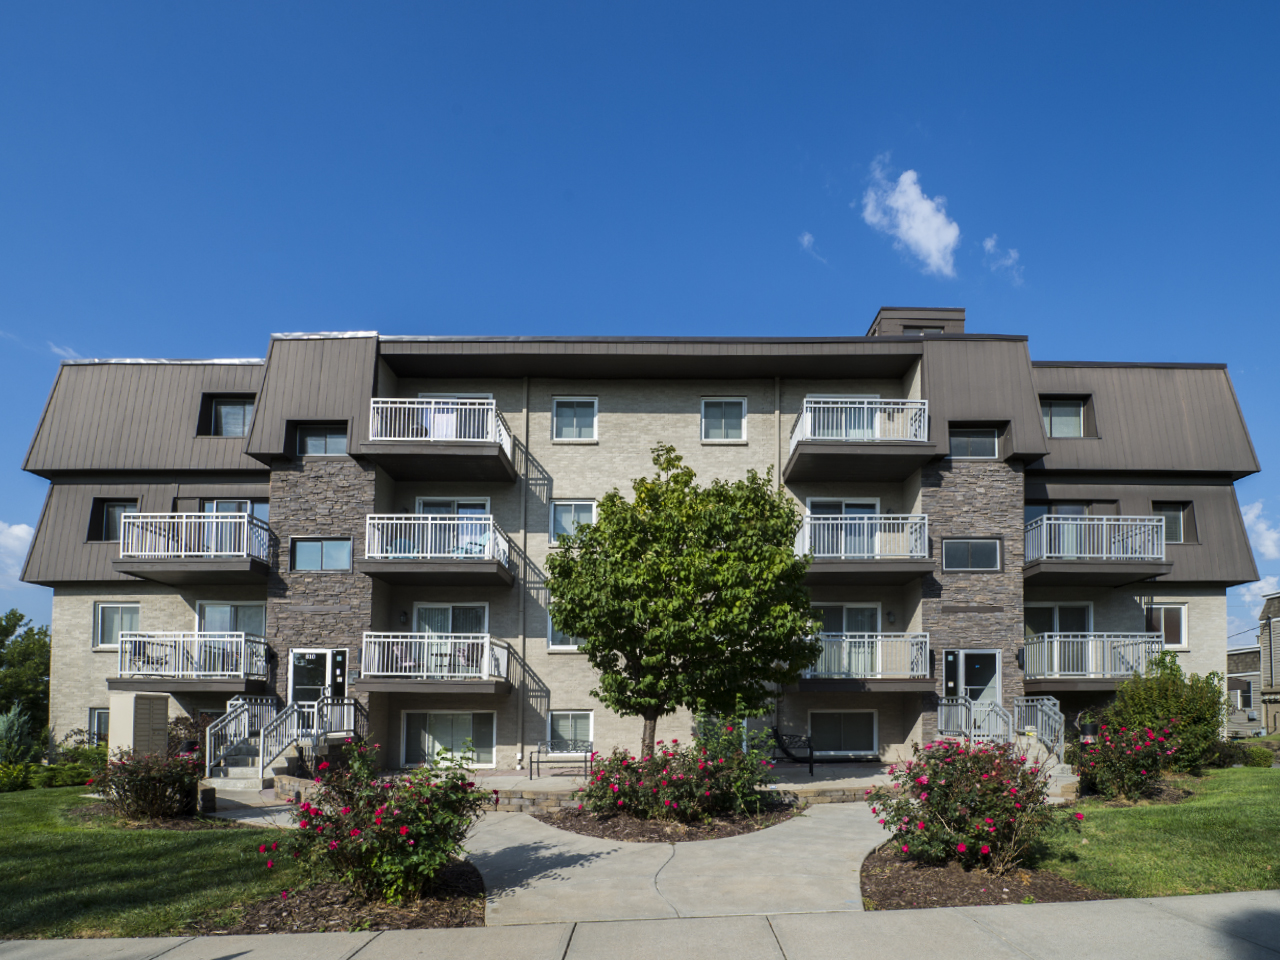 810 North 107th Avenue<br>Mill Pointe Apartments Image